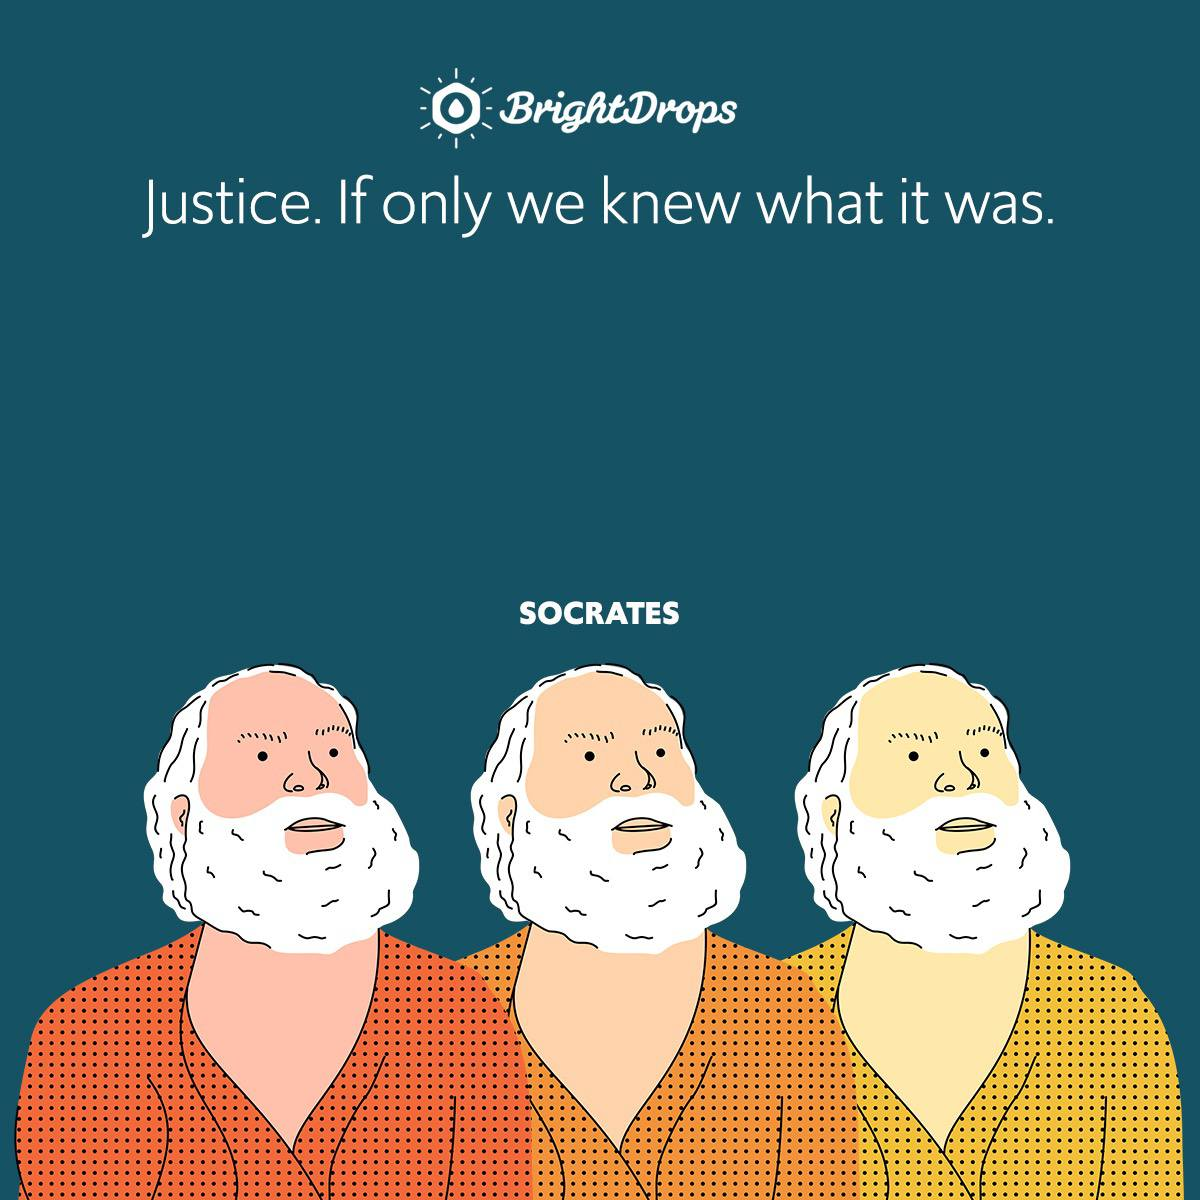 Justice. If only we knew what it was.